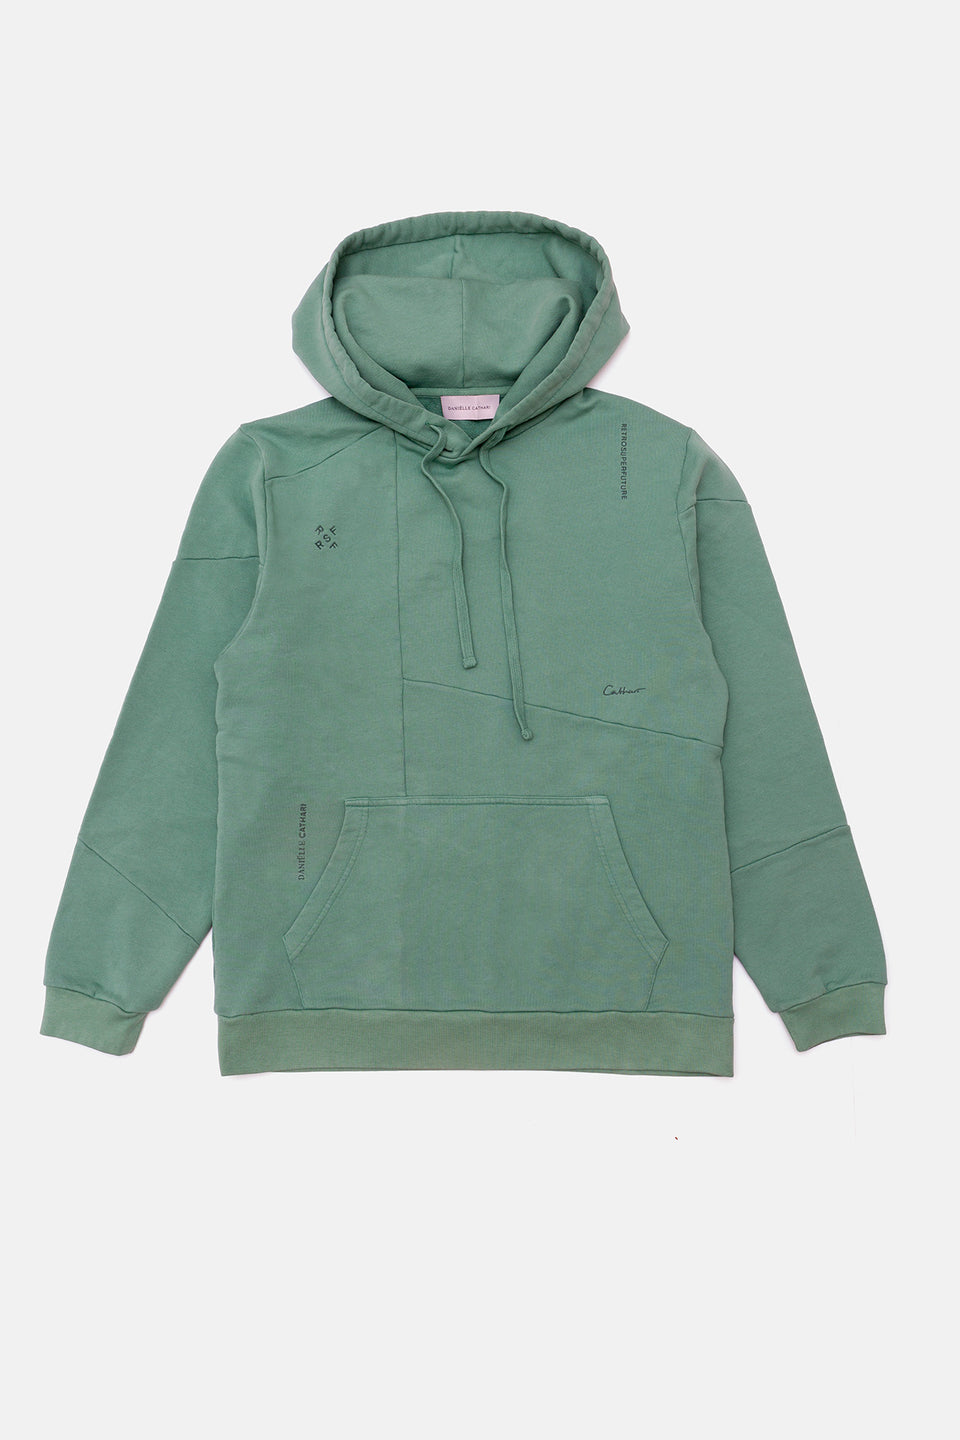 RSF x DC Deconstructed Hoodie Mint